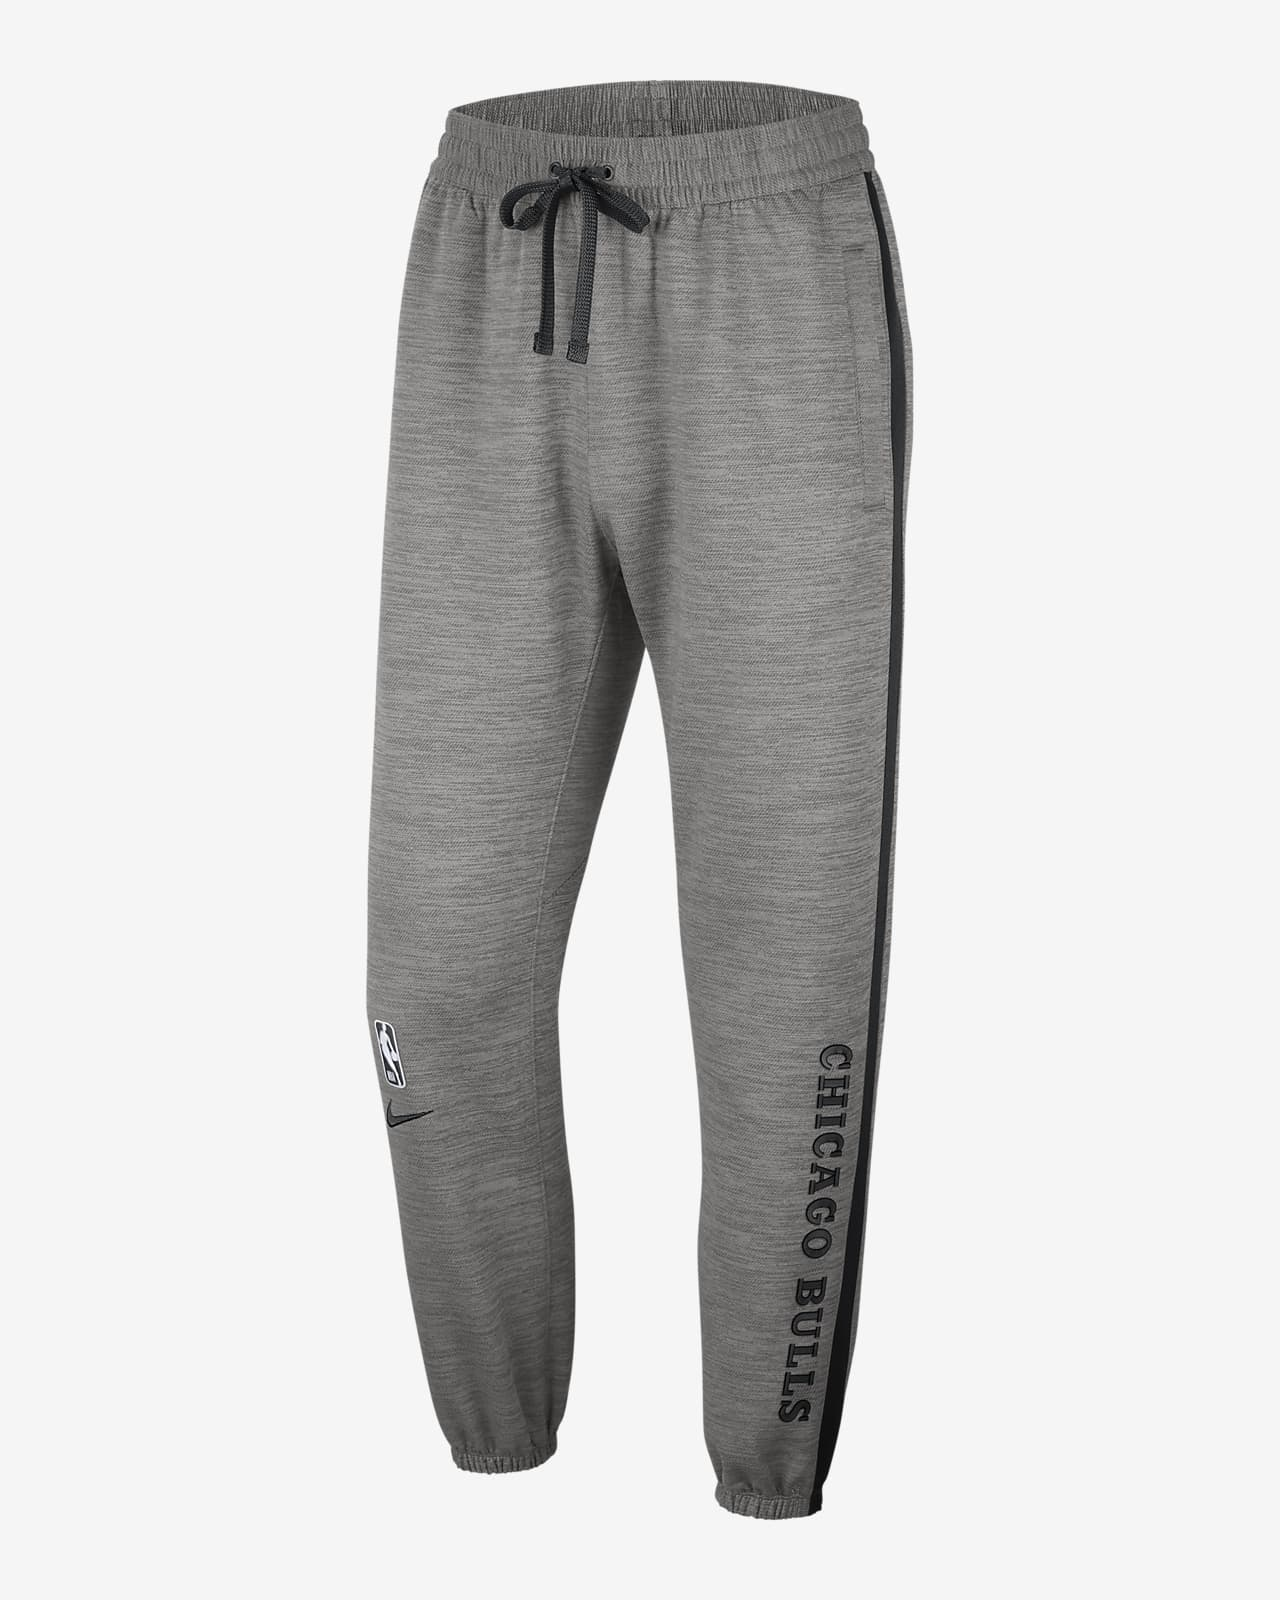 Chicago Bulls Showtime Men's Nike Therma Flex NBA Trousers